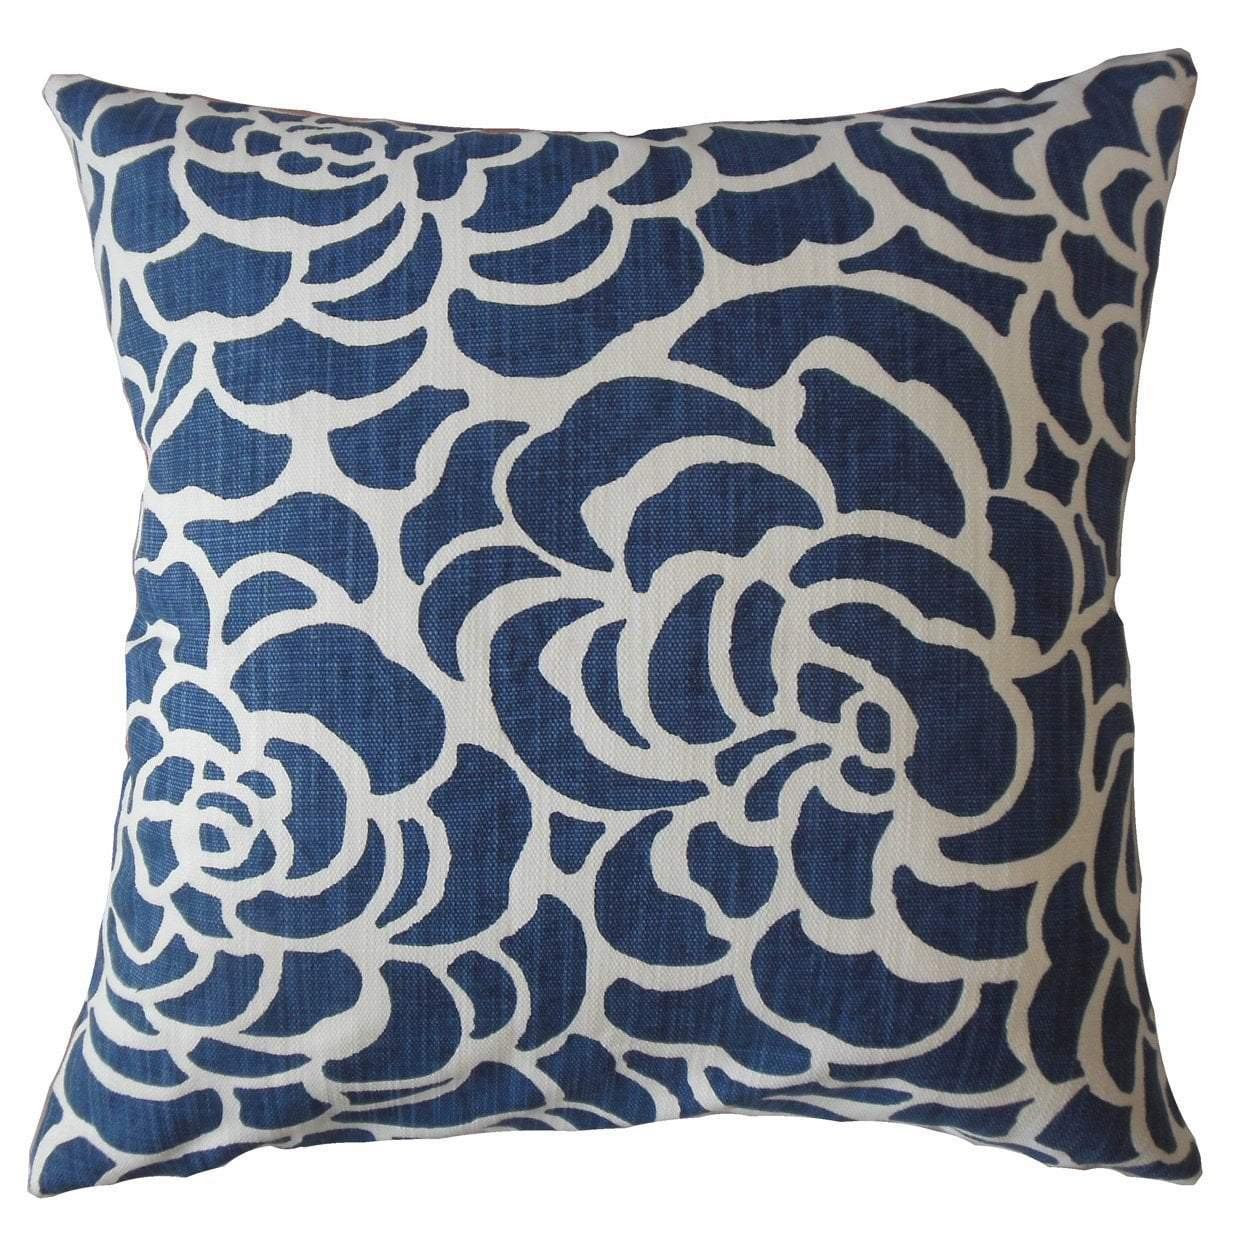 Wingate Throw Pillow Cover